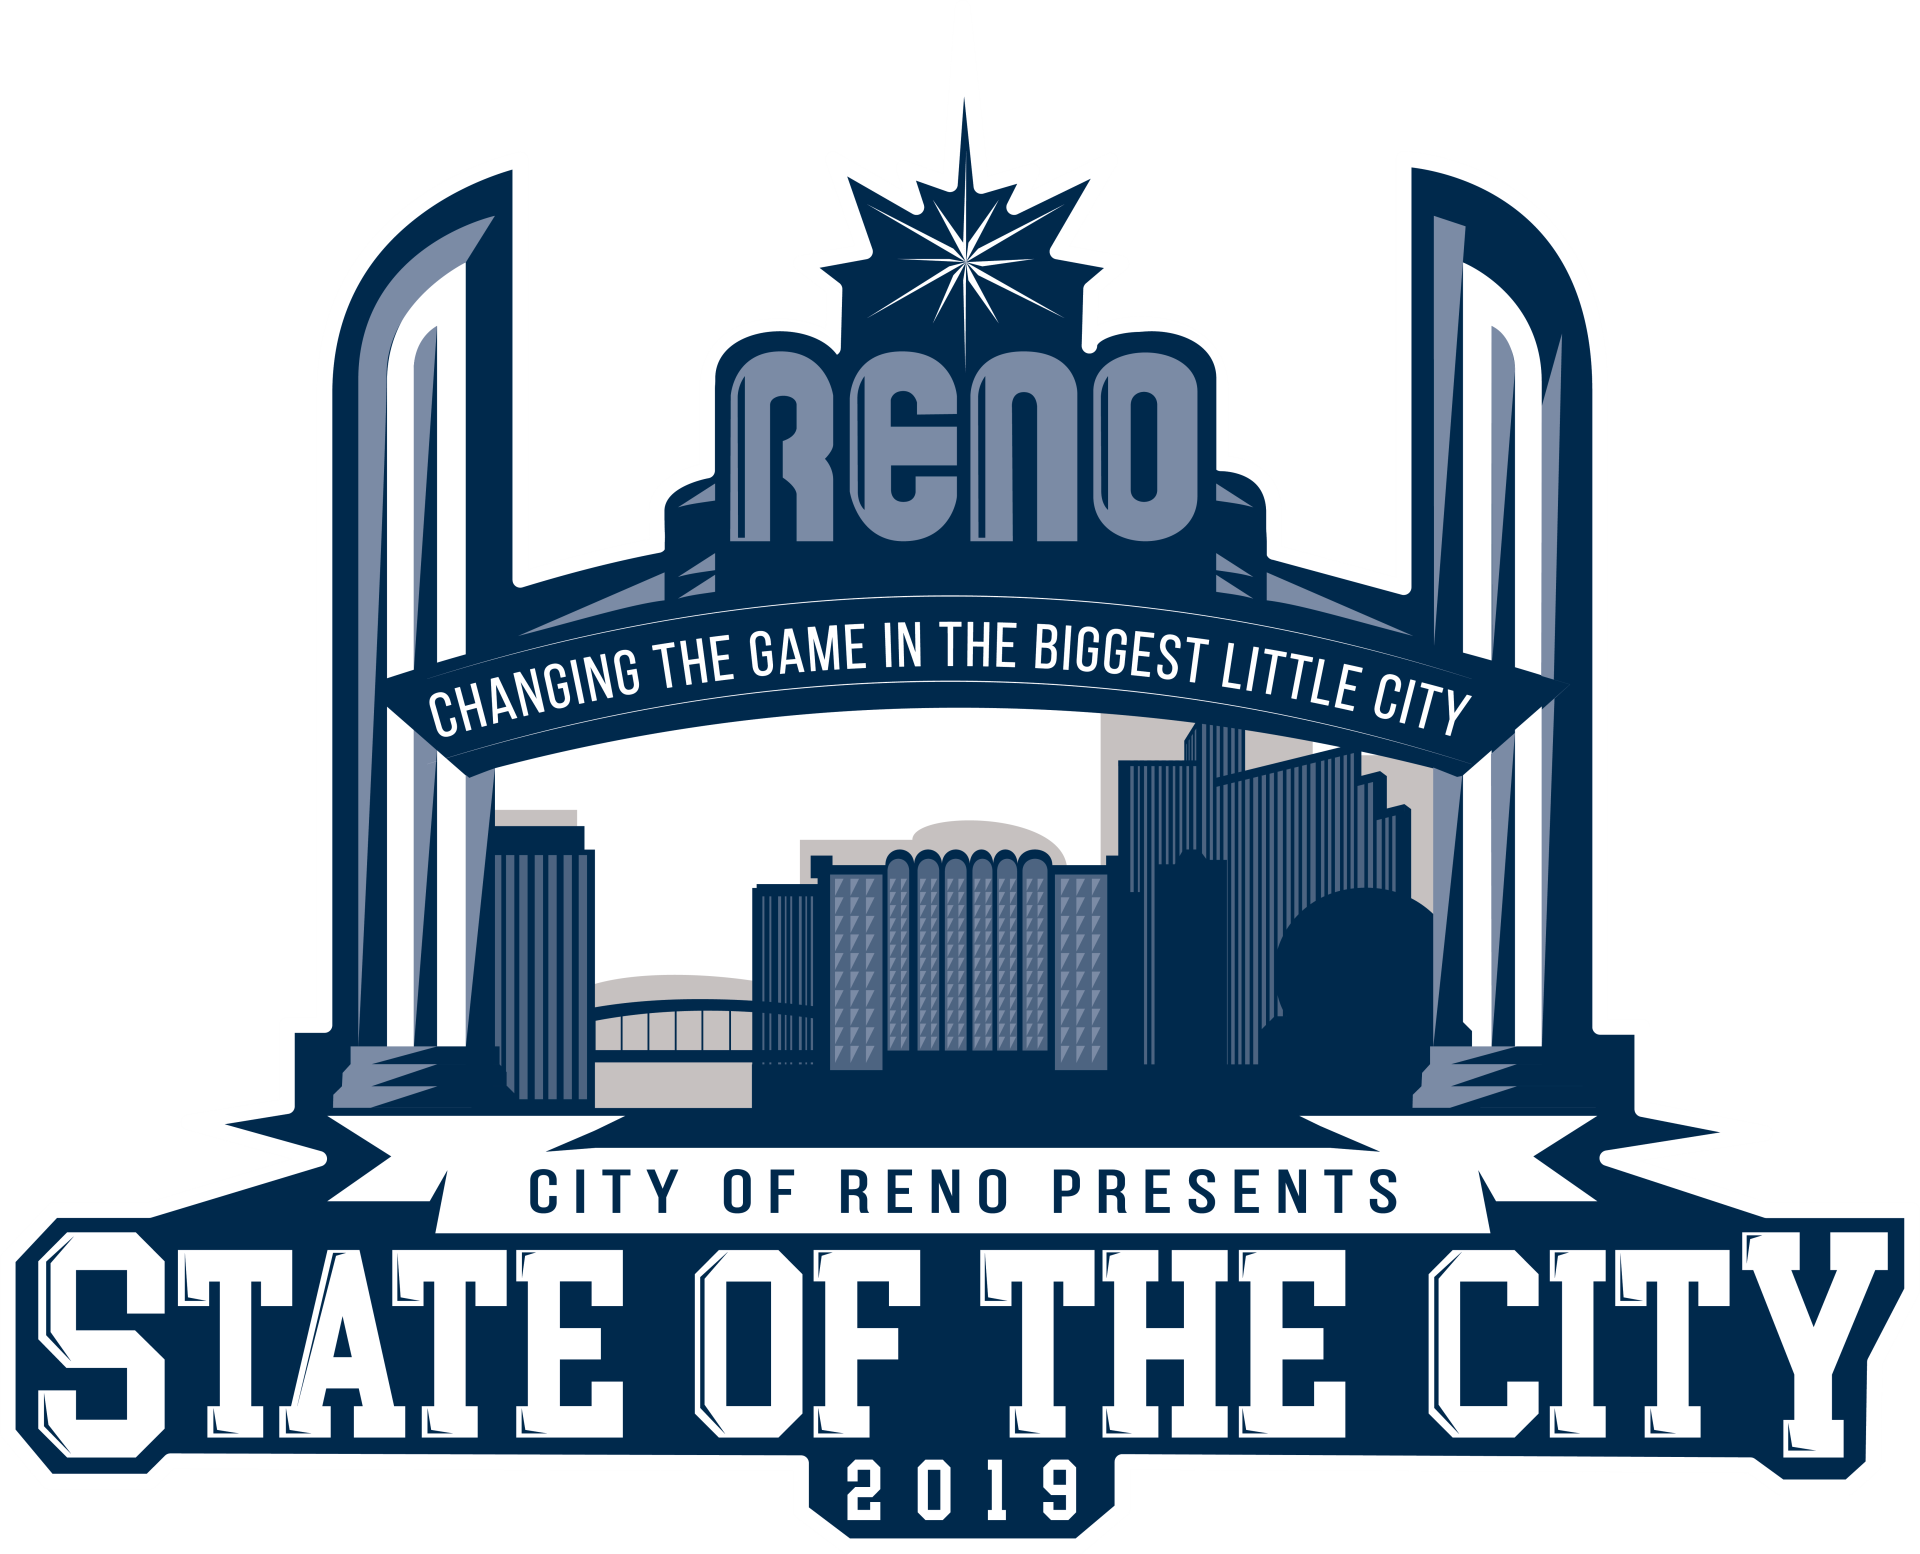 City of Reno presents State of the City logo